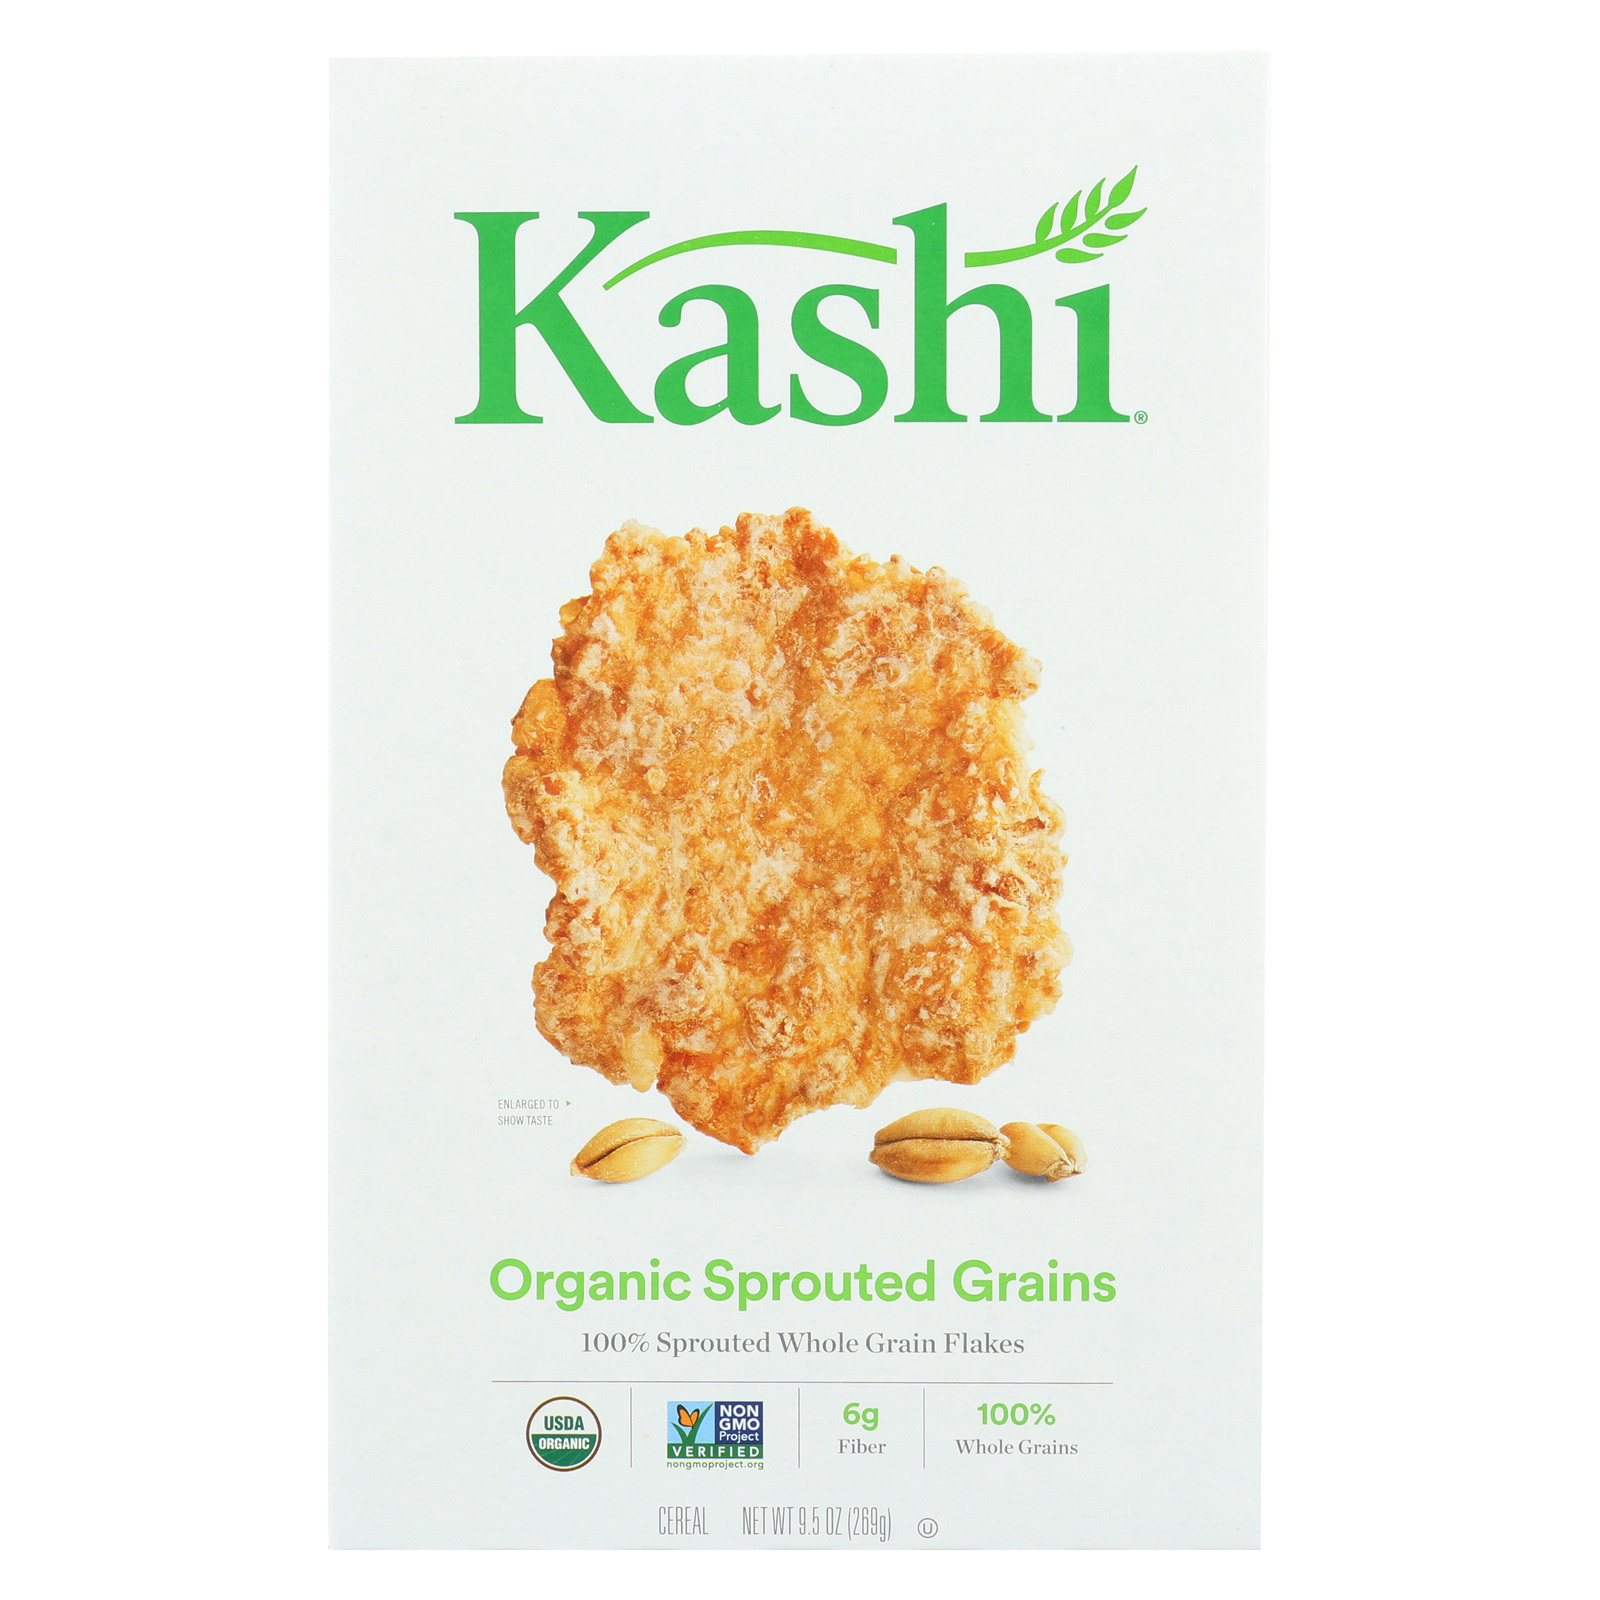 Kashi Sprouted Grains Cereal - Case of 12 - 9.5 oz.